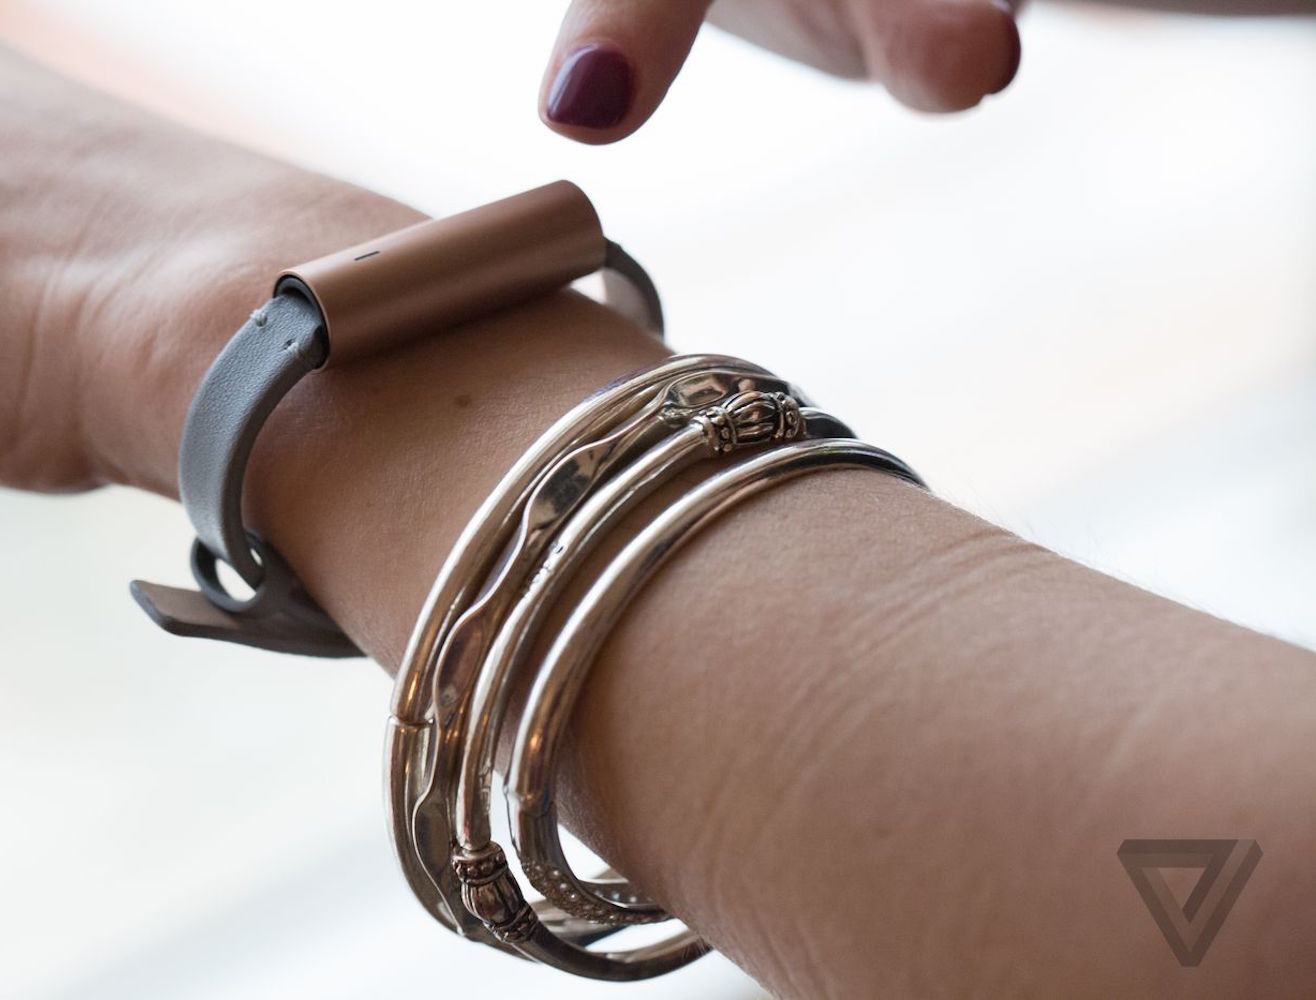 Misfit Ray Bracelet Activity Tracker